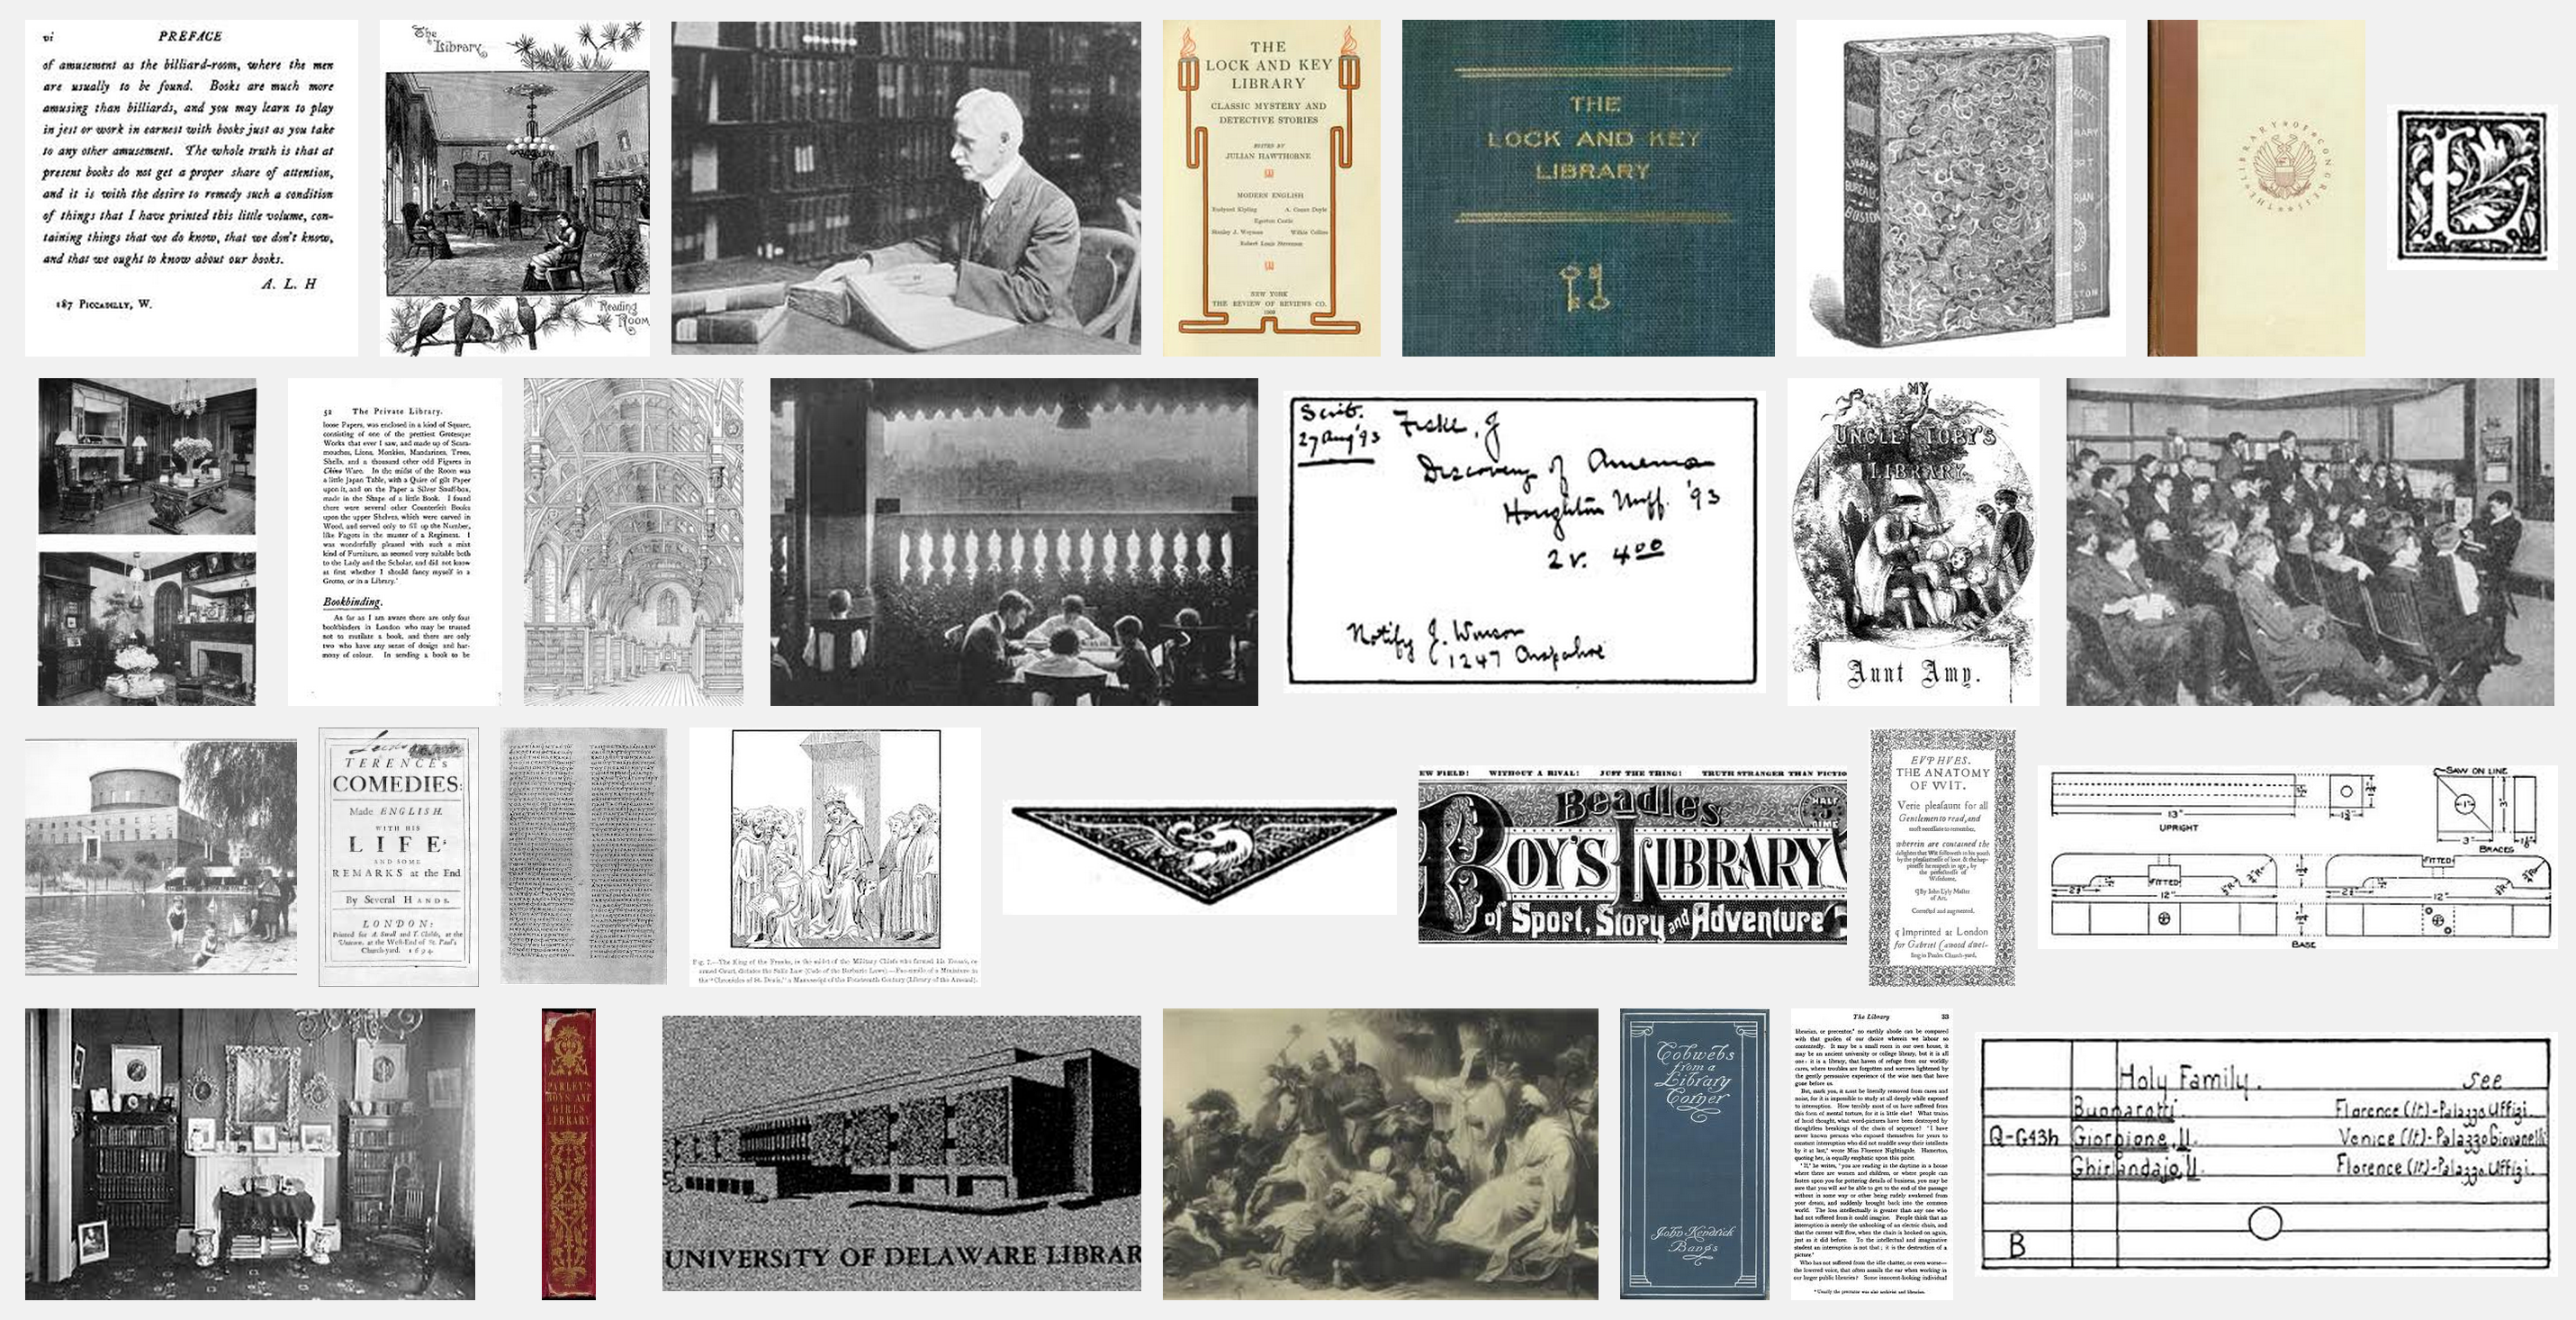 How to find images in public domain ebooks